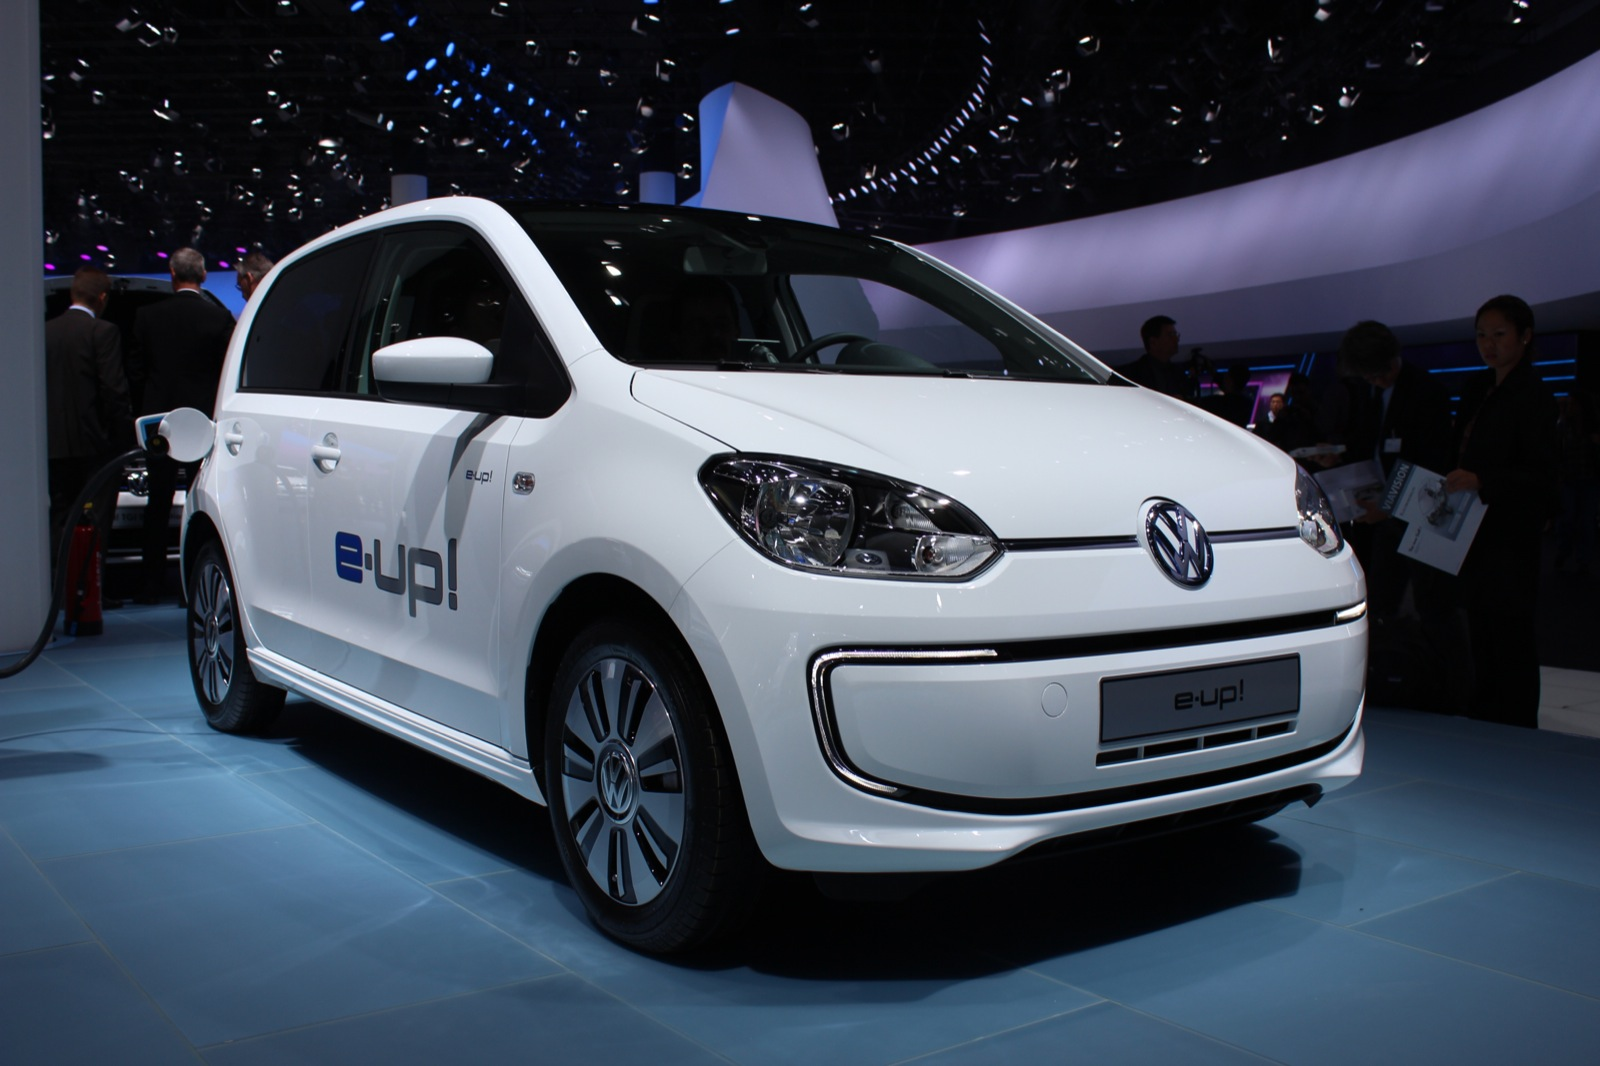 Volkswagen E Up Electric Car Live Photo Gallery 2013 Frankfurt Auto Show